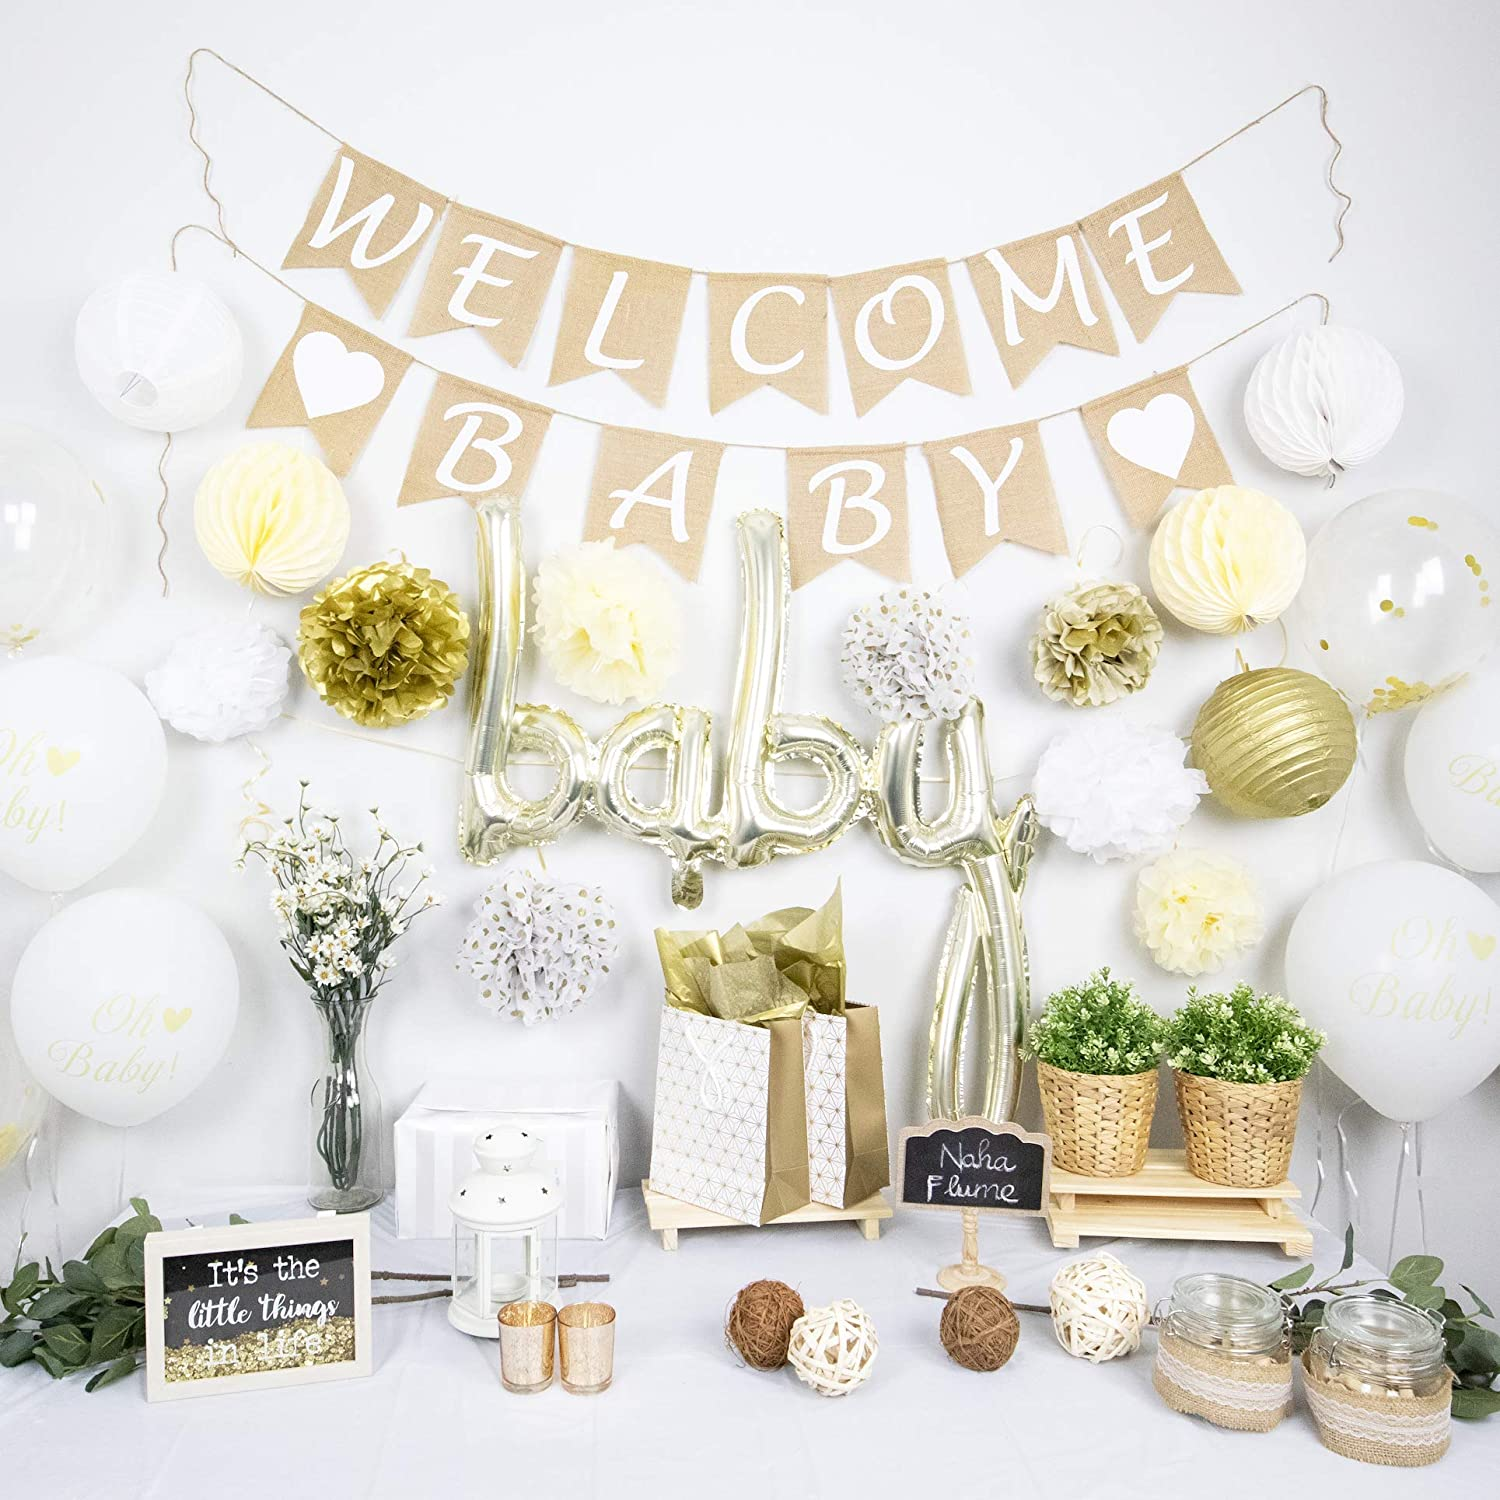 Amazon Com Naha Flume Rustic Baby Shower Decorations Neutral 40pc Set Burlap Welcome Baby Banner Gold Baby Shower Decorations Gender Neutral Oh Baby Shower Decor Gender Neutral Baby Shower